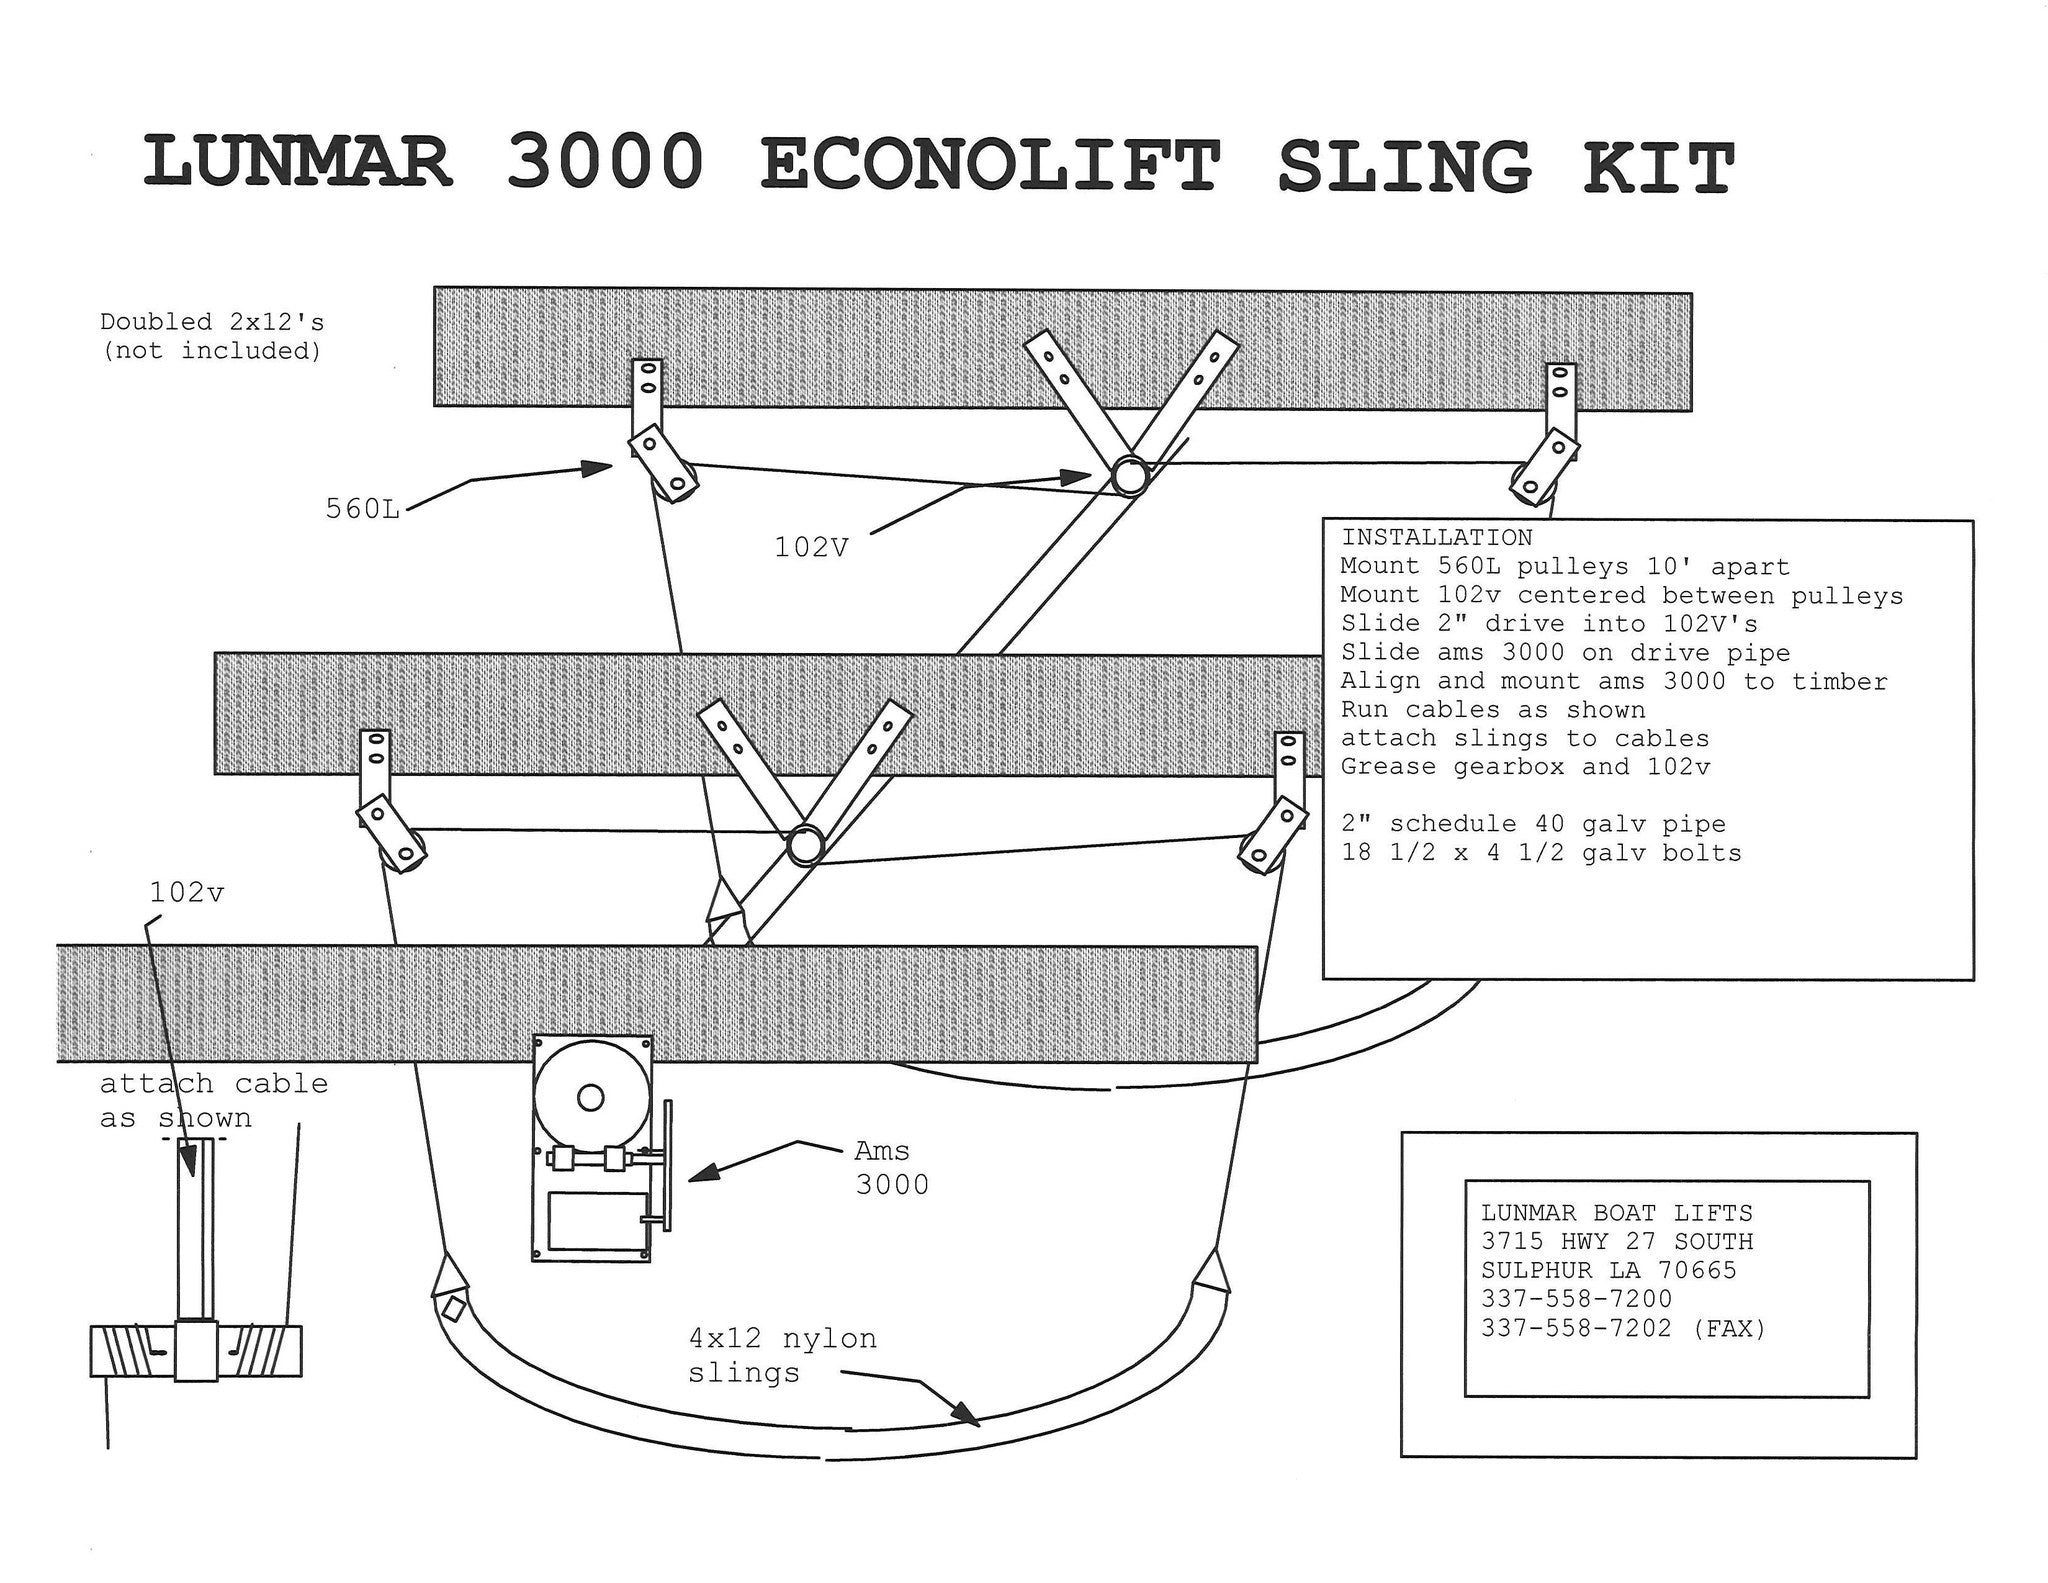 3000_Econo_Installation_Diagram boat lift wiring dolgular com  at bakdesigns.co